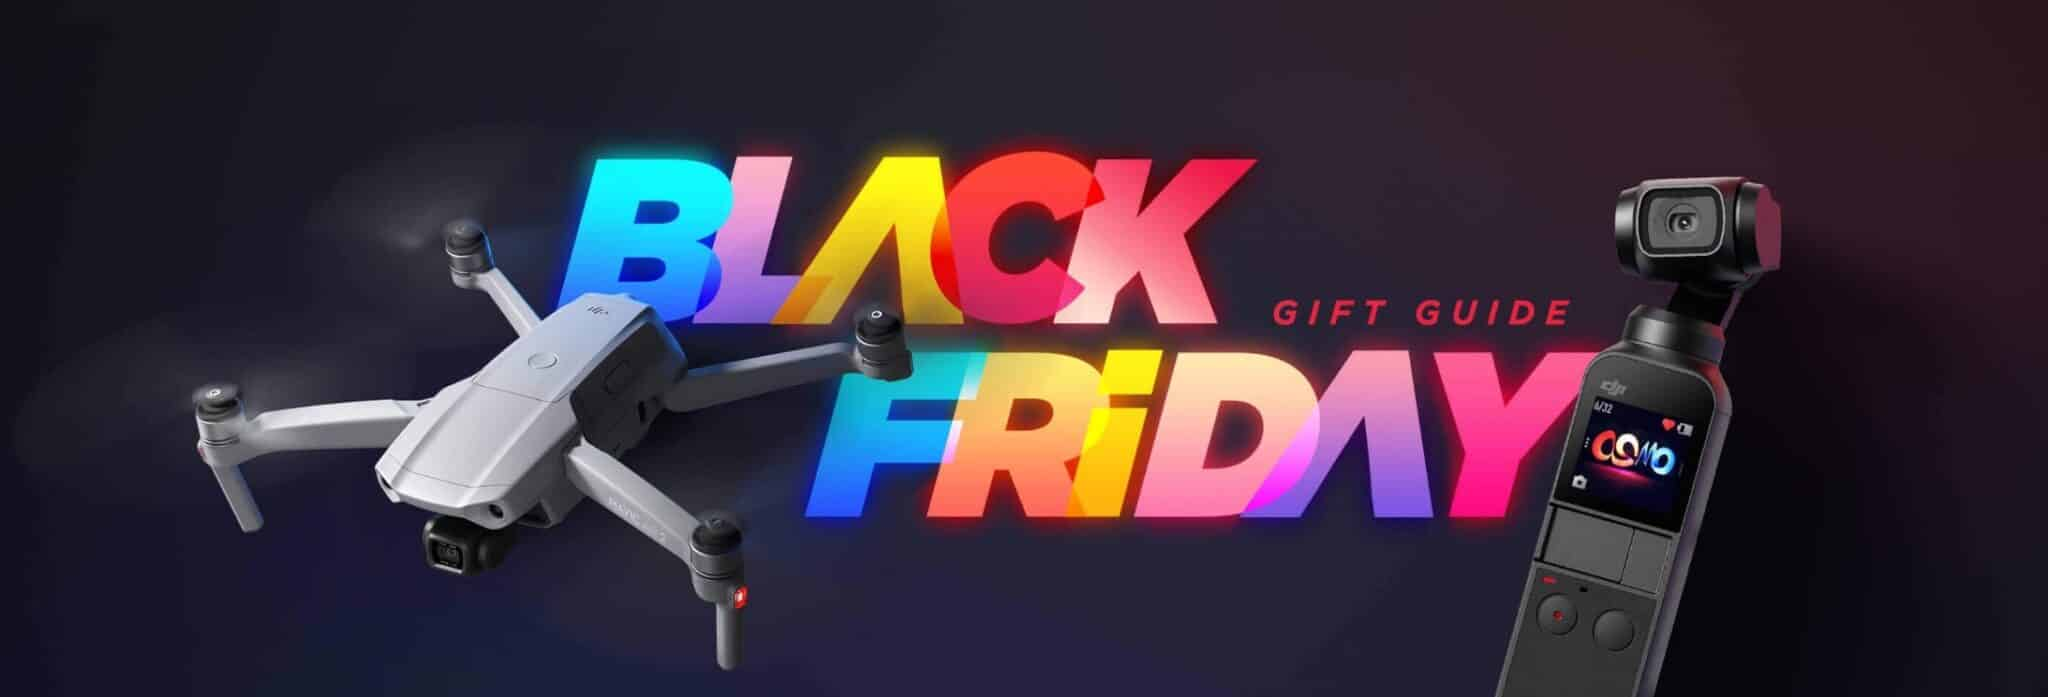 DJI launches special Black Friday and Holiday Gift Guide minisite